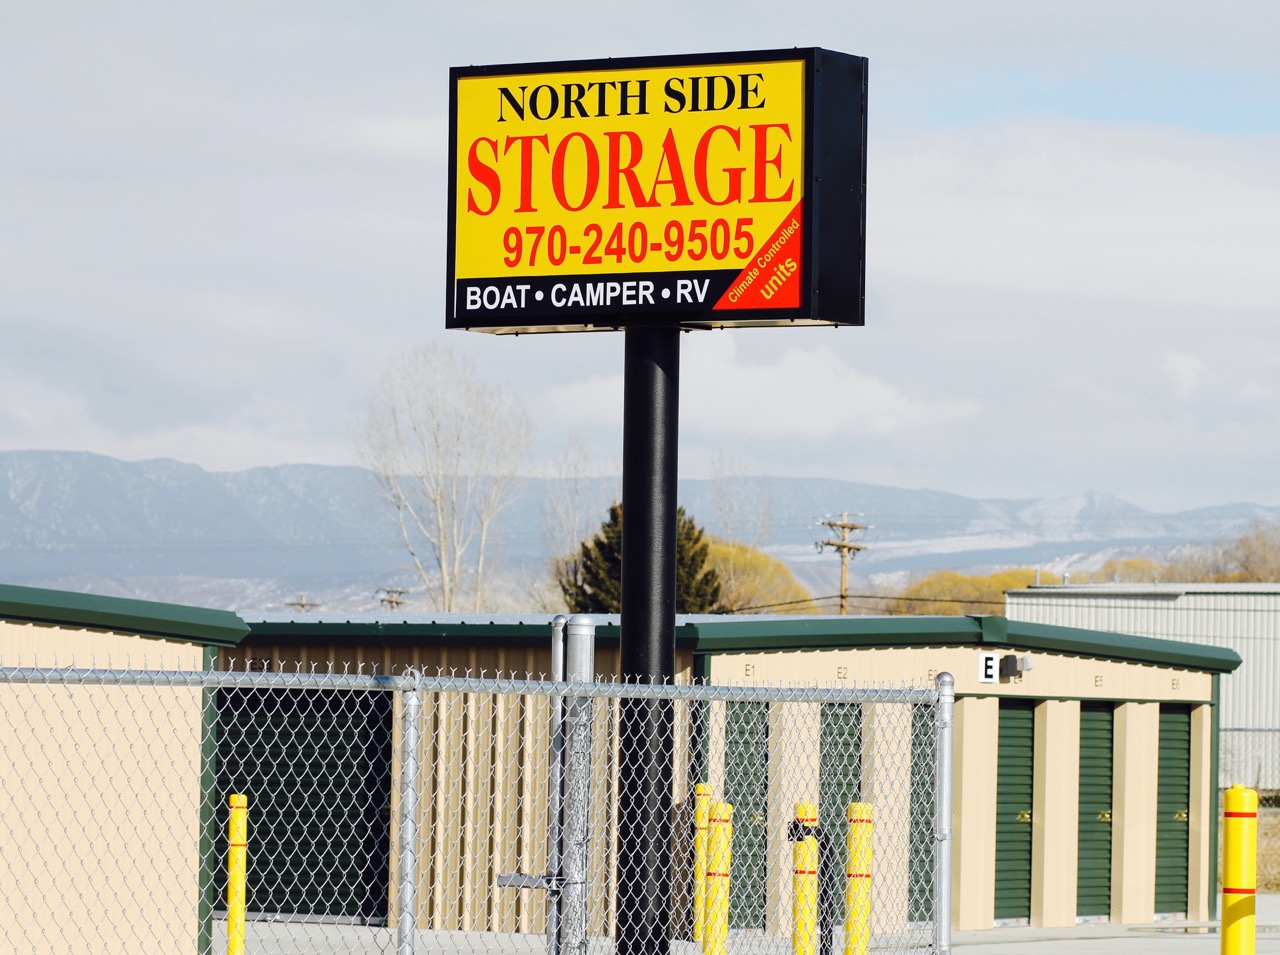 Storage in Delta, CO